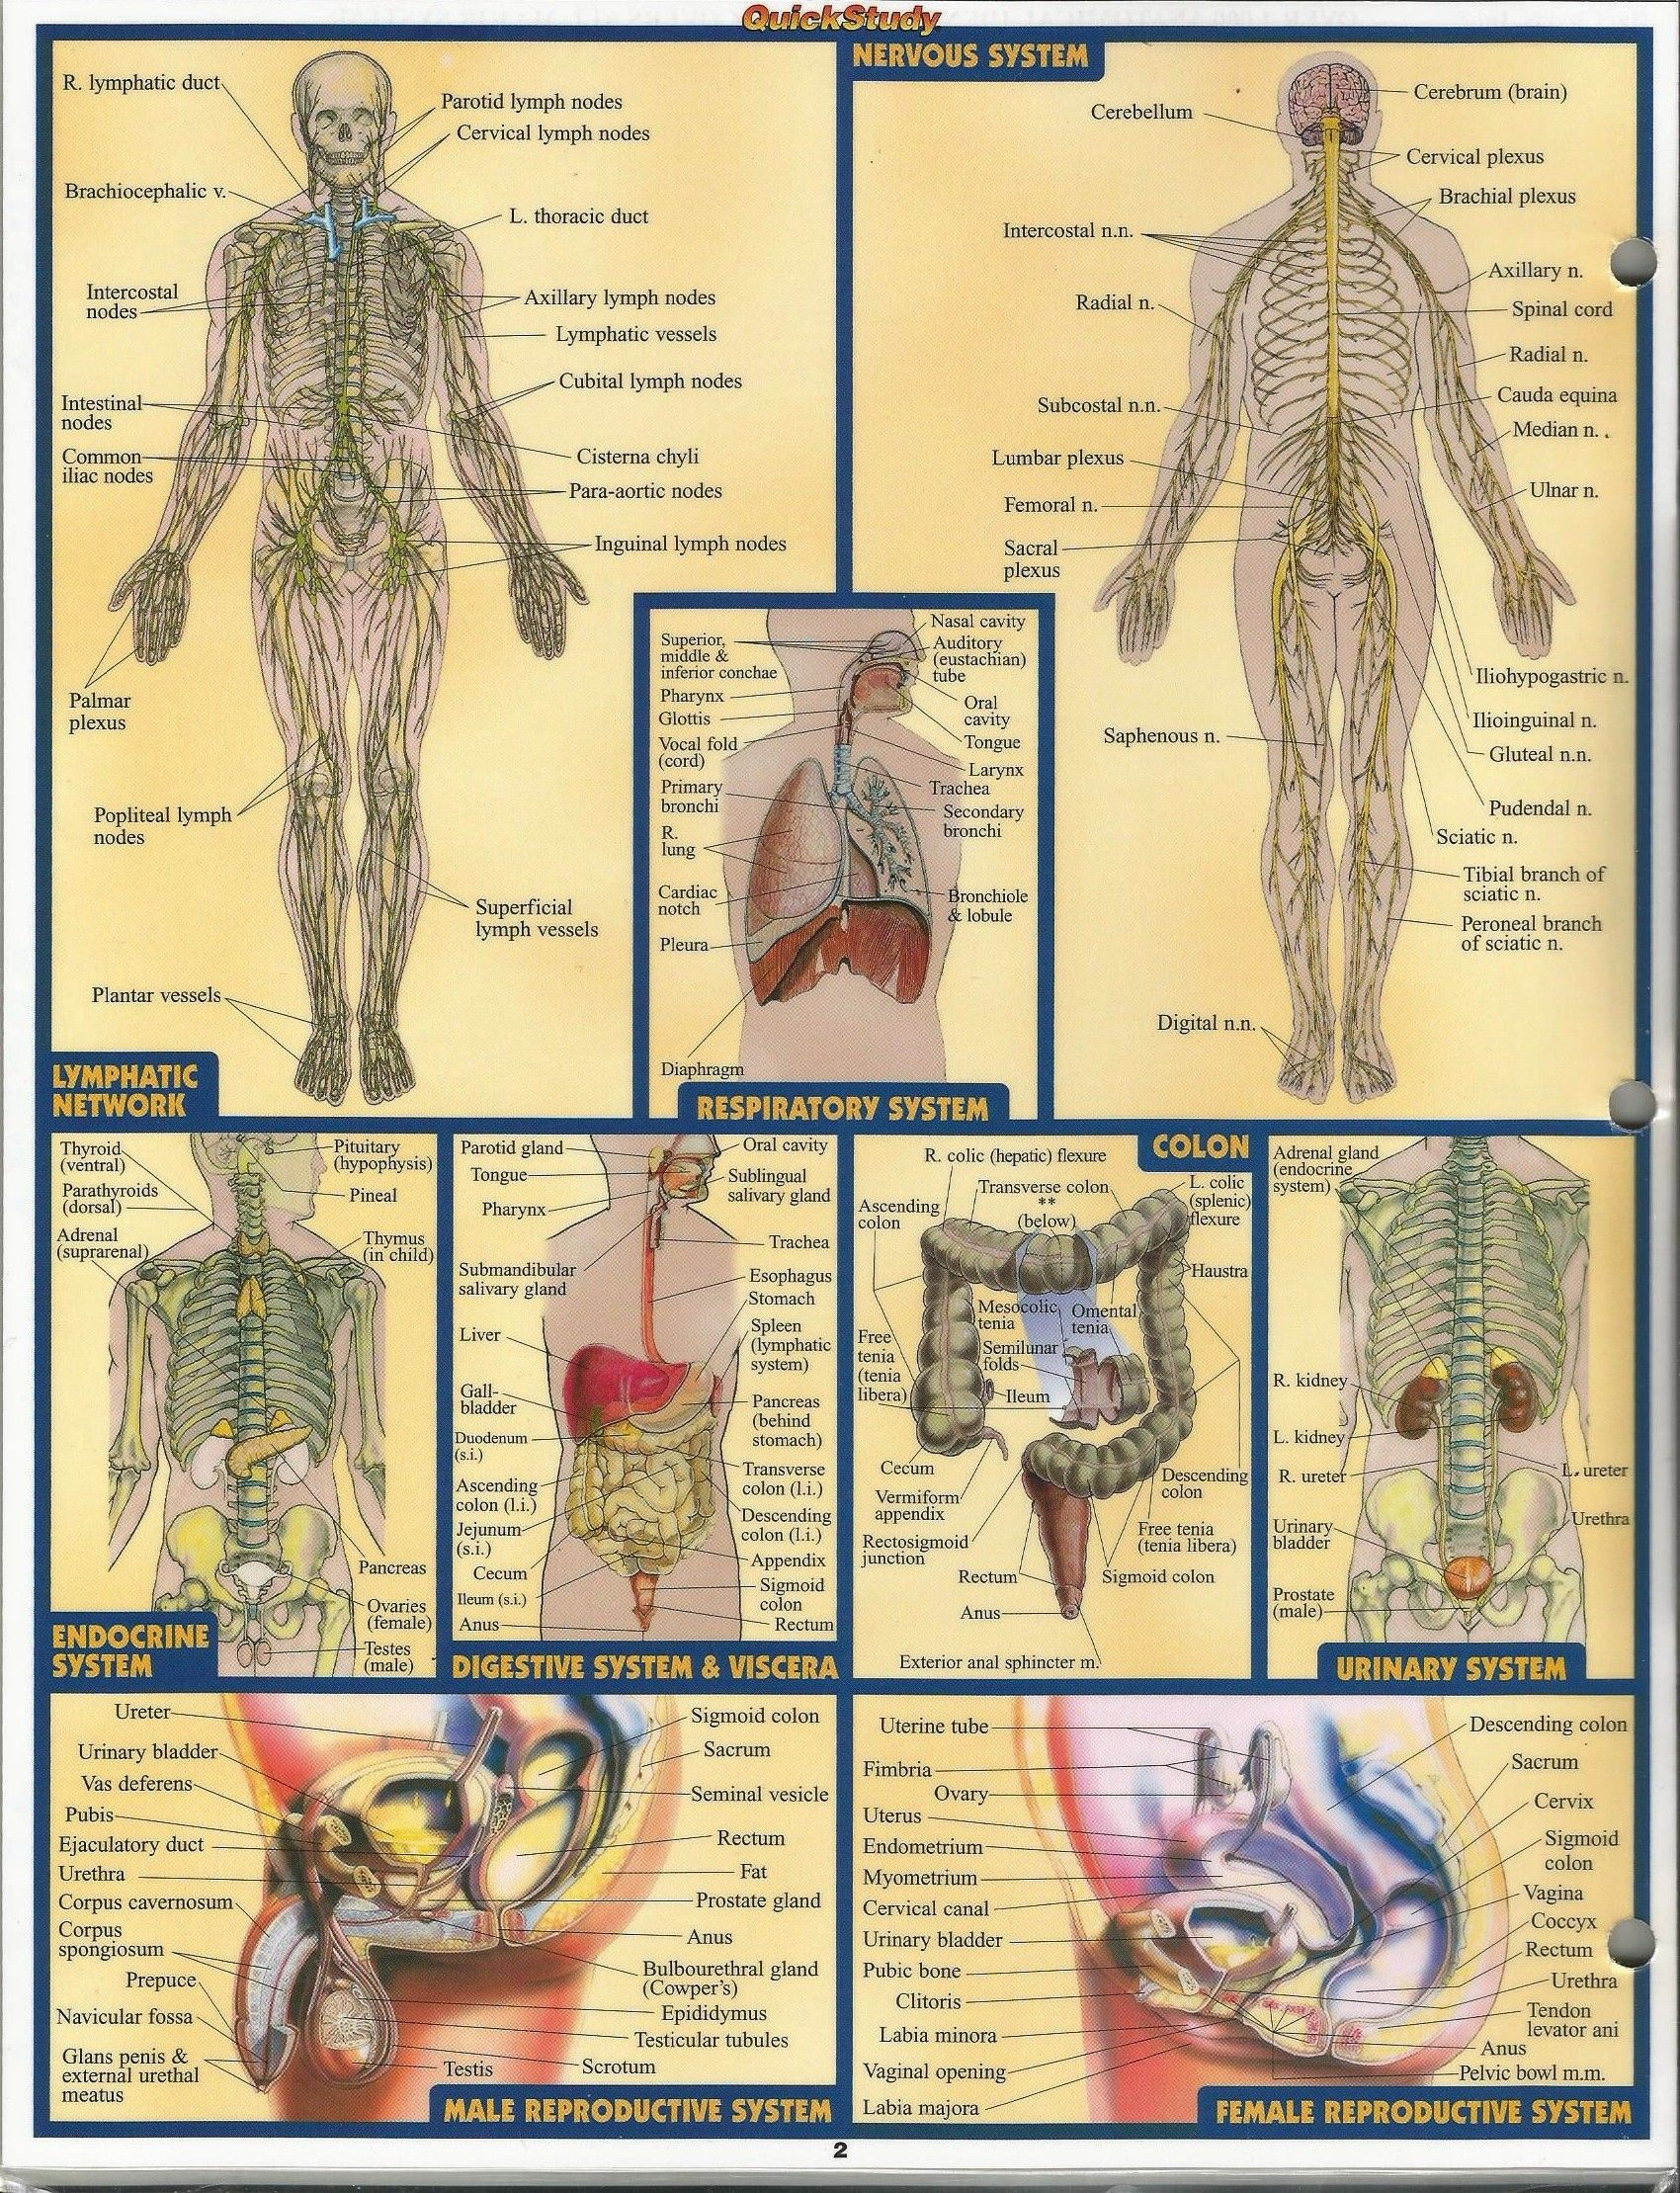 Intraabdominal Systems. | THE HUMAN BODY | Pinterest | Female ...